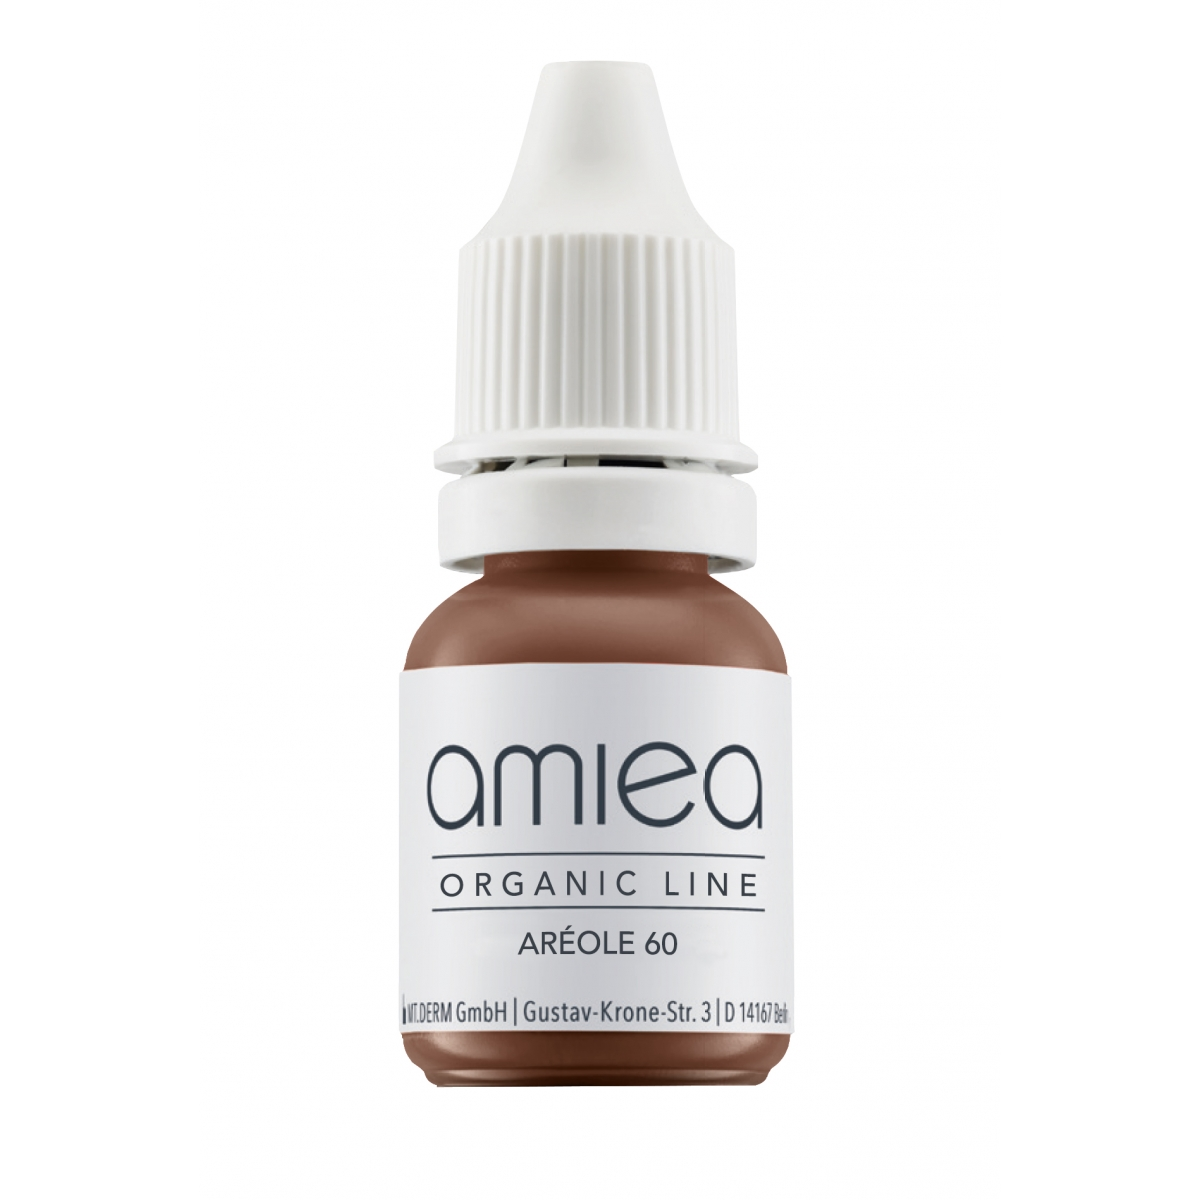 Organicline (10 ml) - PIGMENTS AMIEA ORGANICLINE AREOLES 60, Flacon 10 ml